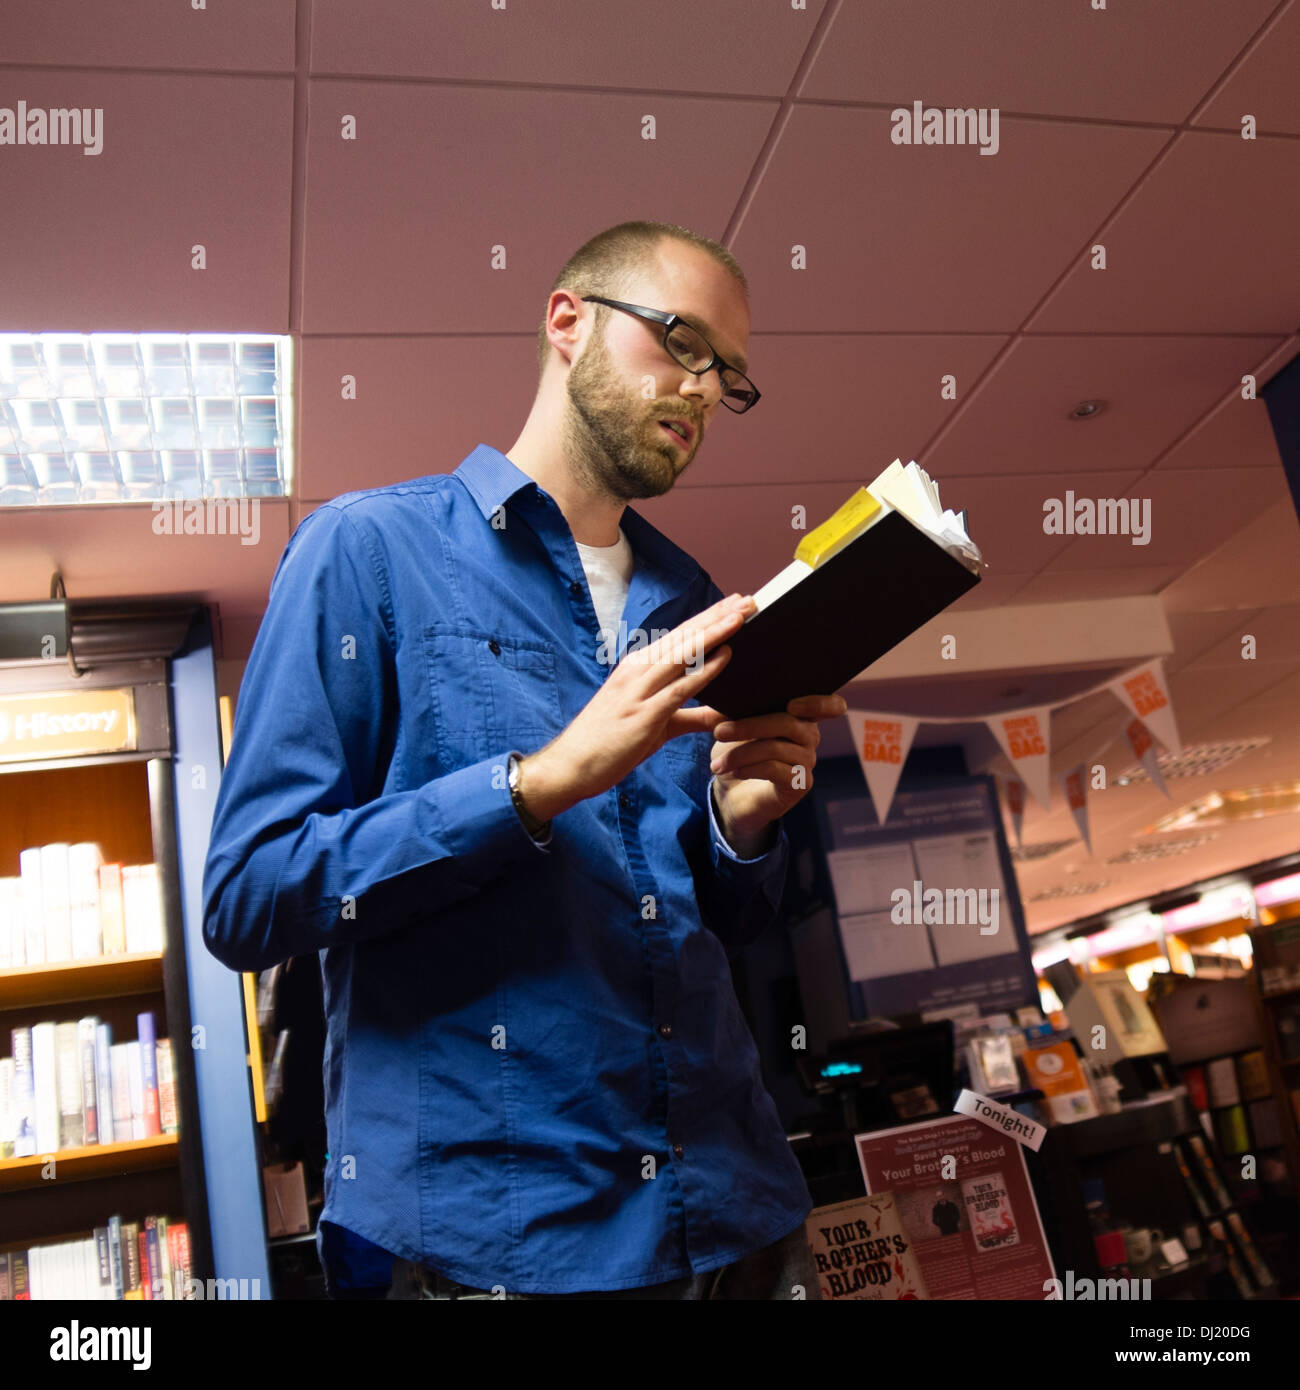 DAVE TOWSEY, reading from his novel 'His Brother's Blood' at Aberystwyth Arts Centre bookshop, November 7 2013 - Stock Image